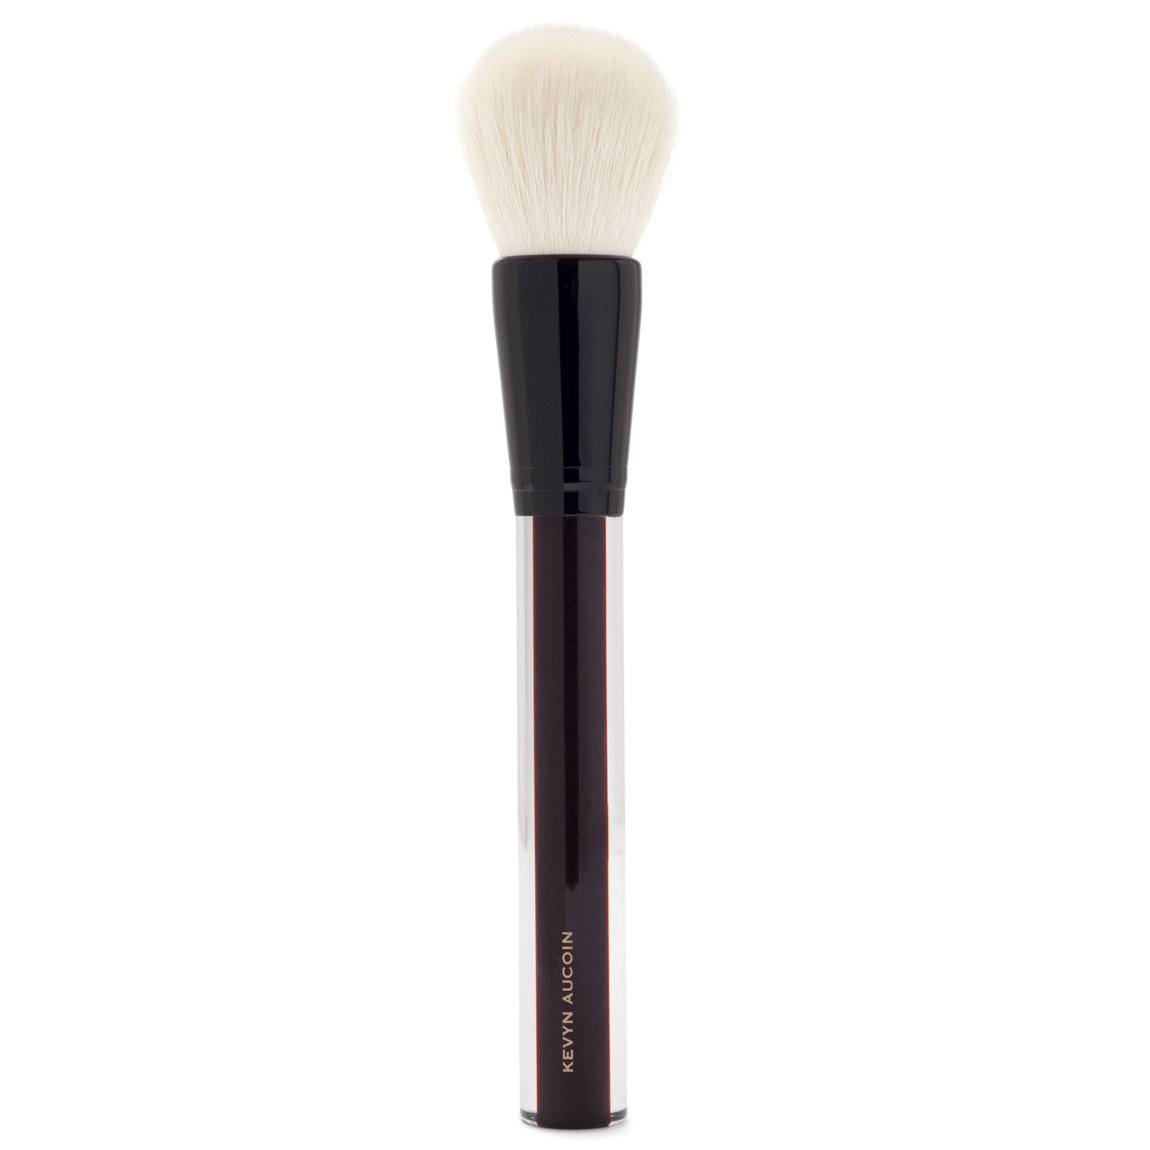 Kevyn Aucoin Loose Powder Brush alternative view 1 - product swatch.